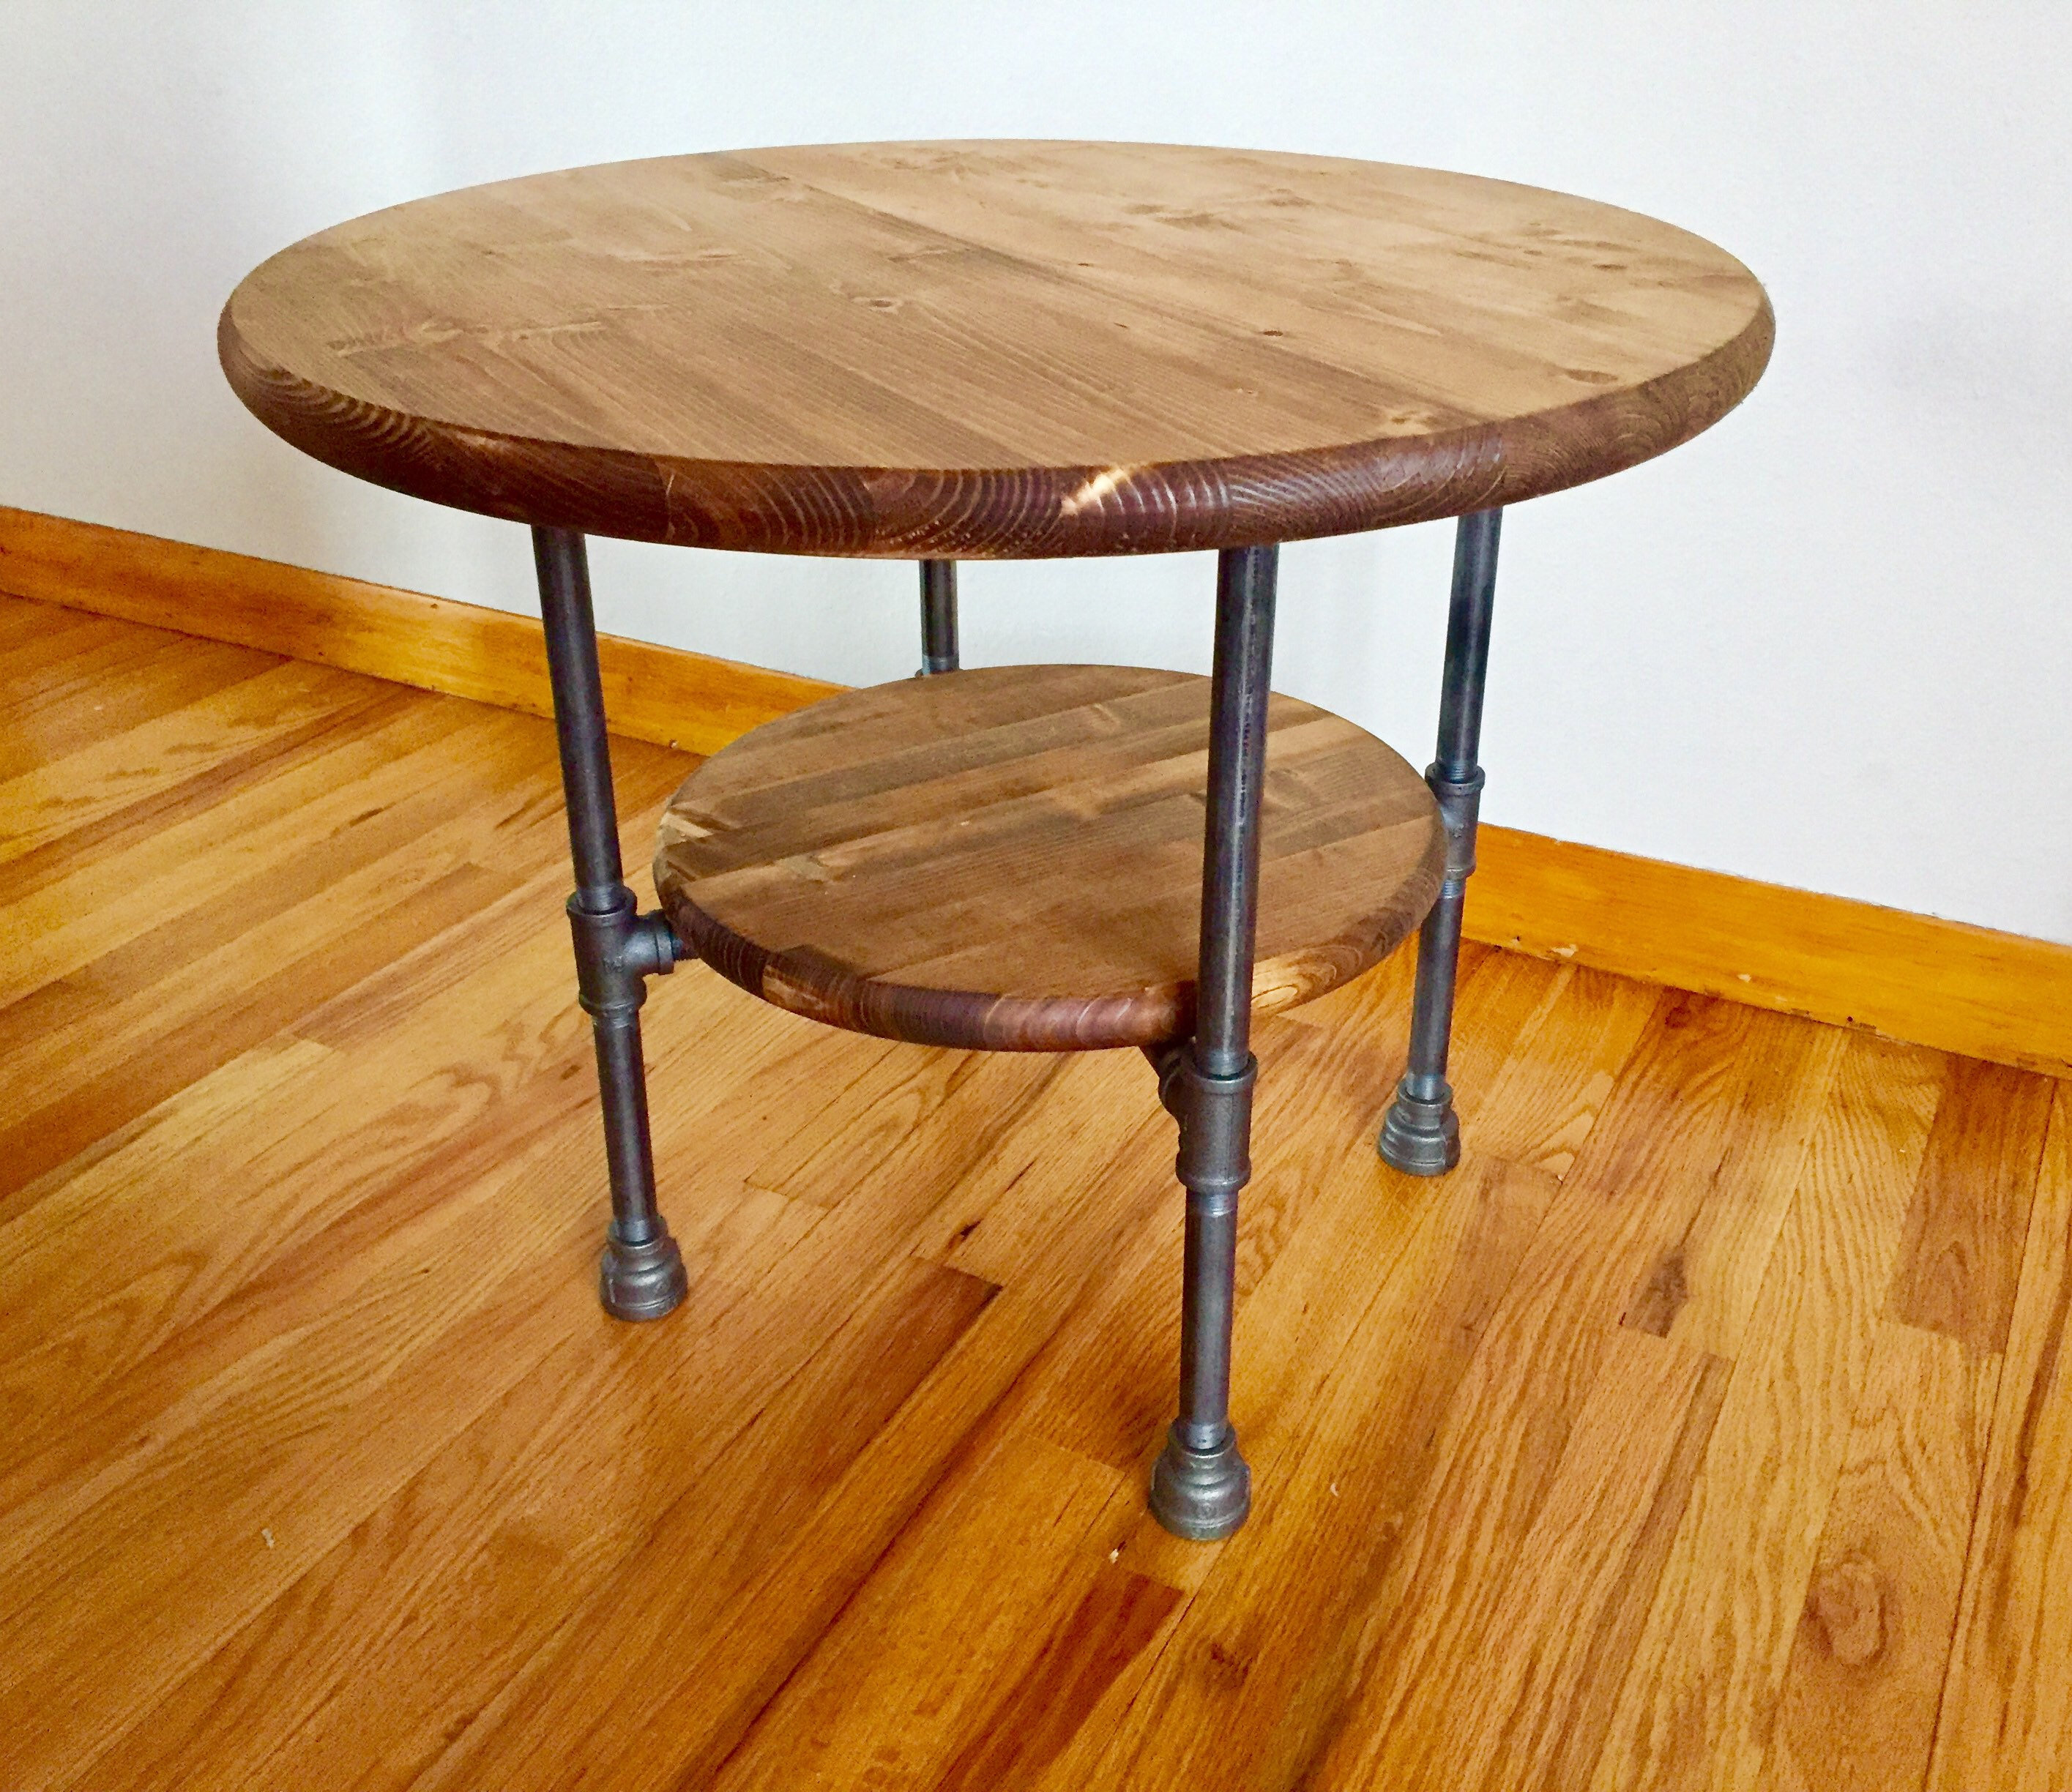 custom order for wattersone black pipe end table diy parts kits fullxfull complete base tall toscana unfinished kitchen stools value city magnolia home collection horseshoe tables